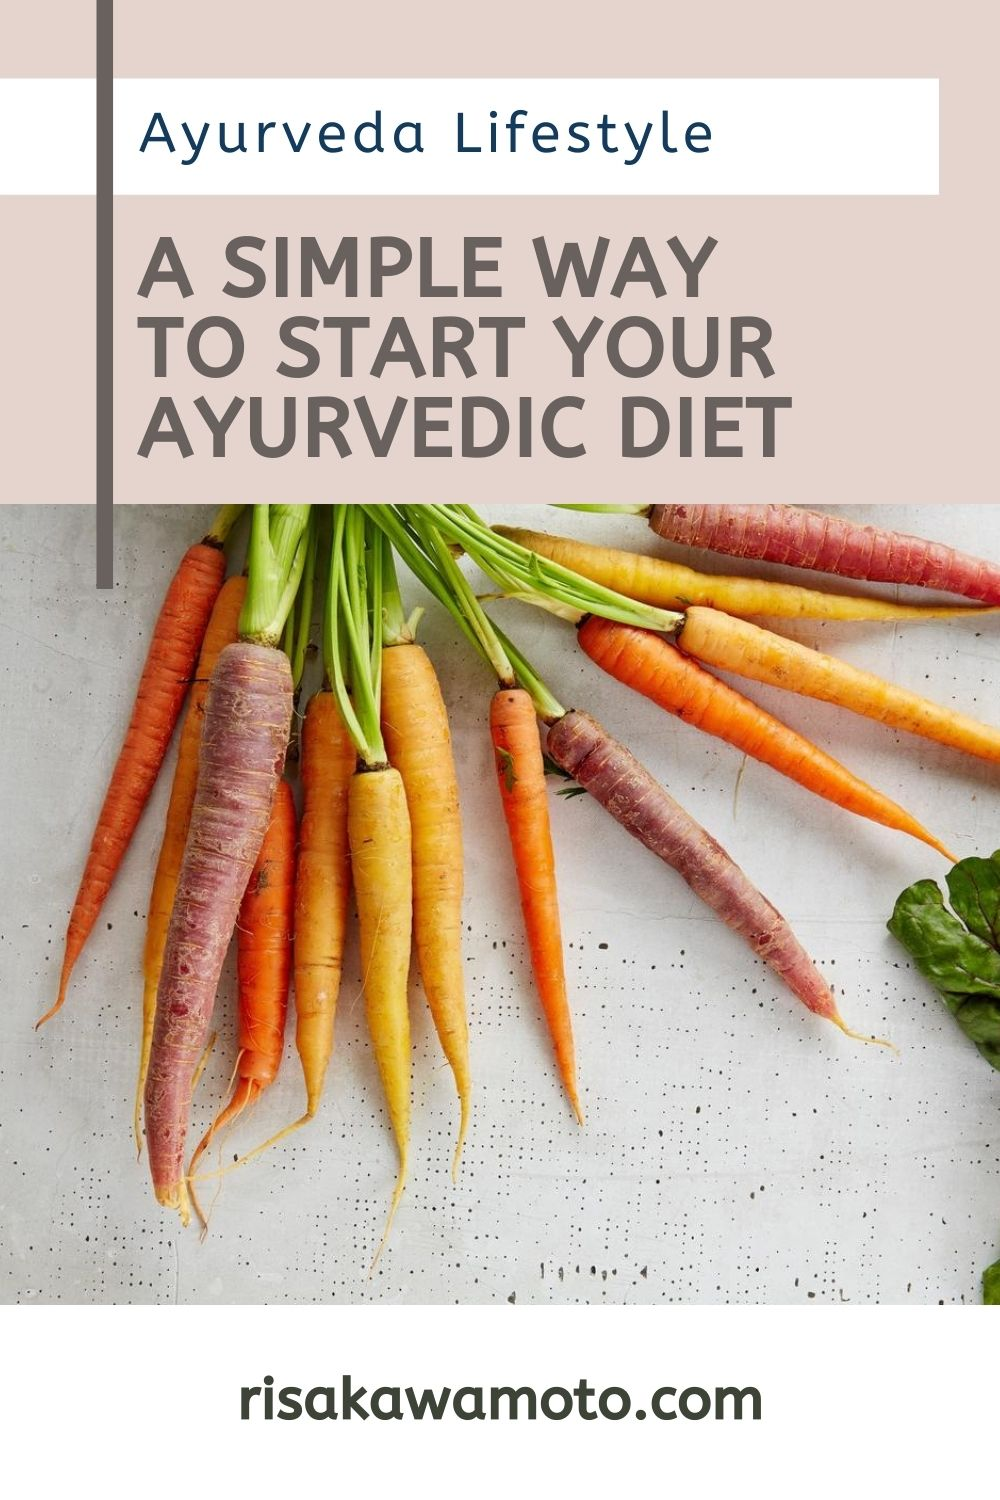 A Simple Way to Start Your Ayurvedic Diet